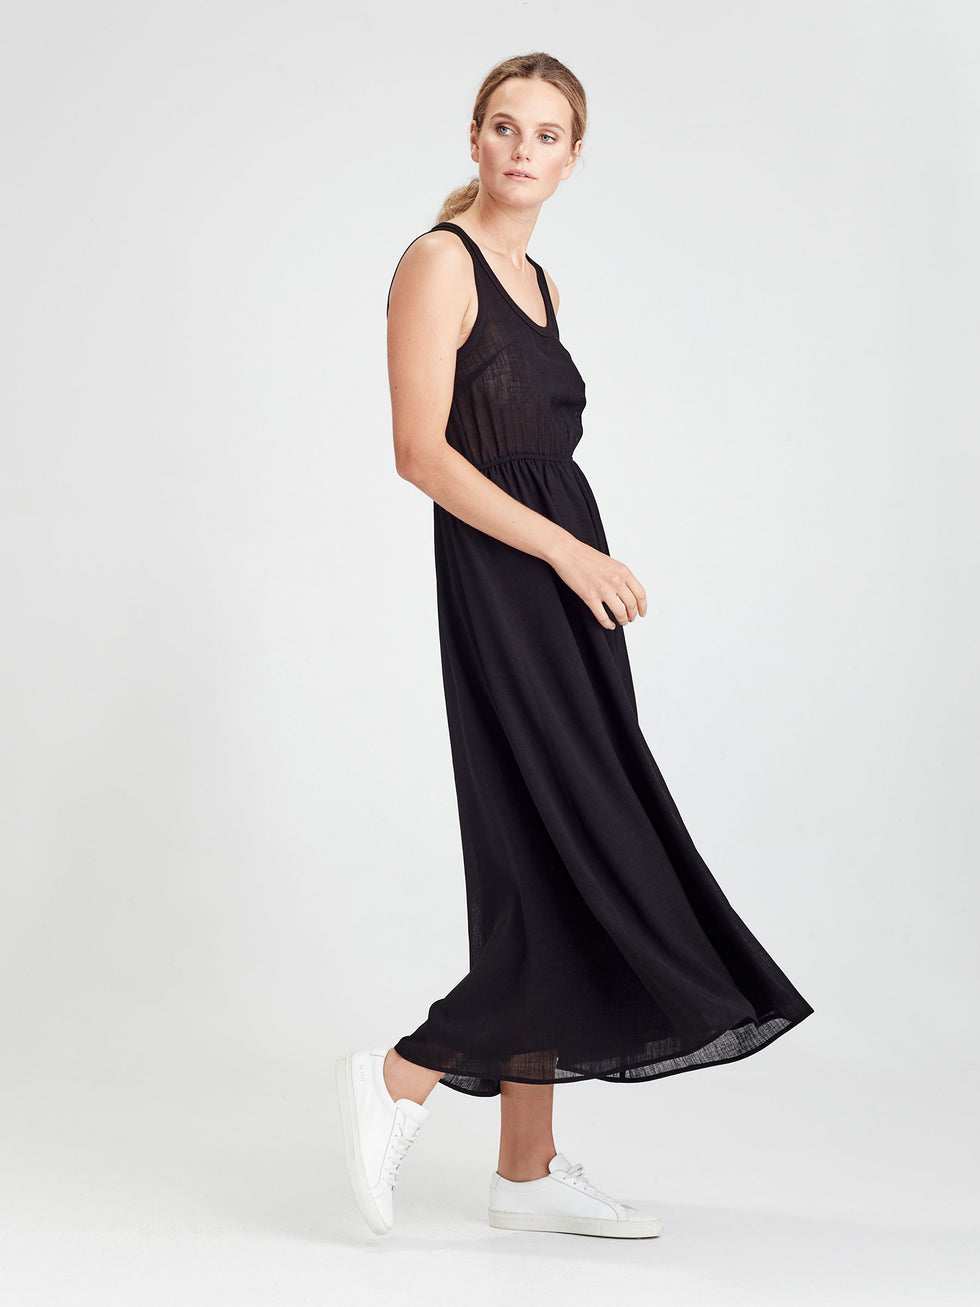 Lillian Dress (Cross Hatch Crepe) Black